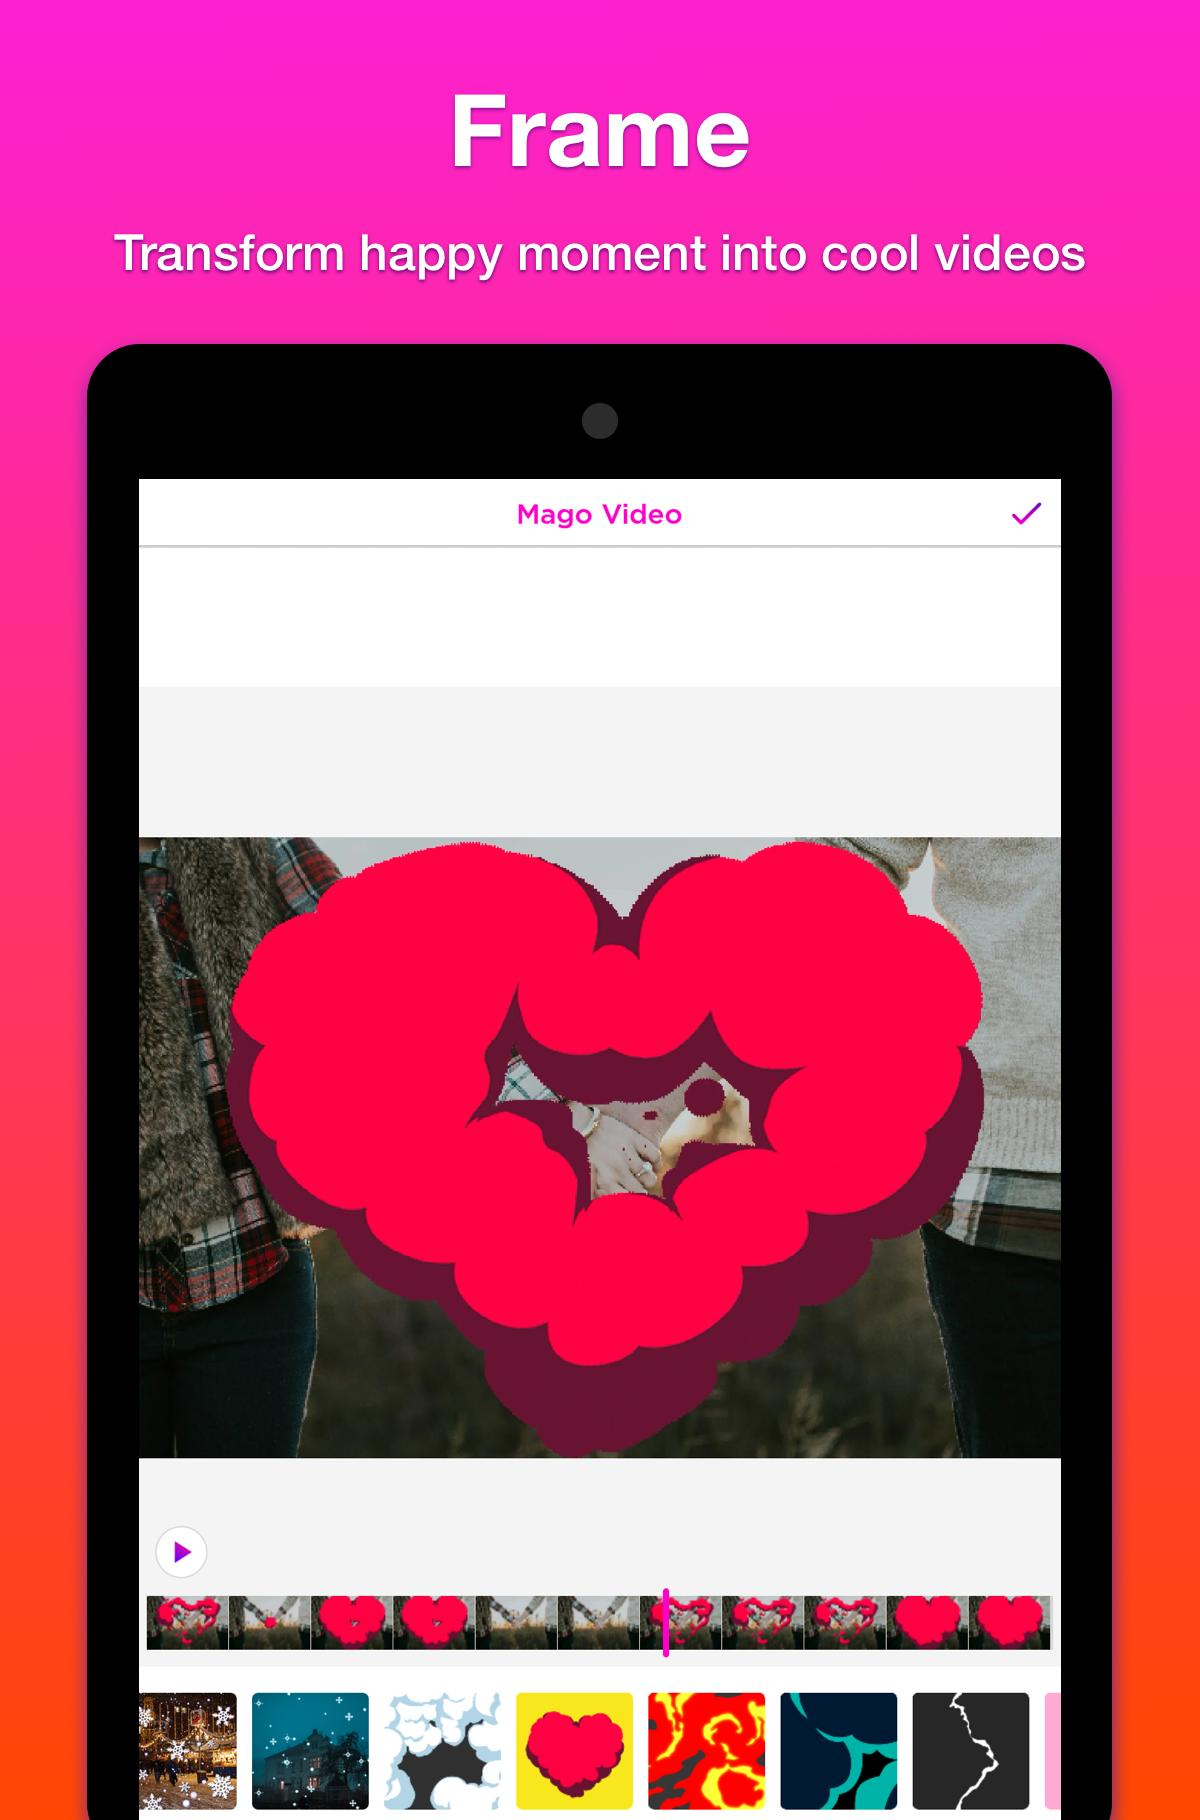 Video Star, Video Editor Magic Effects - MagoVideo for